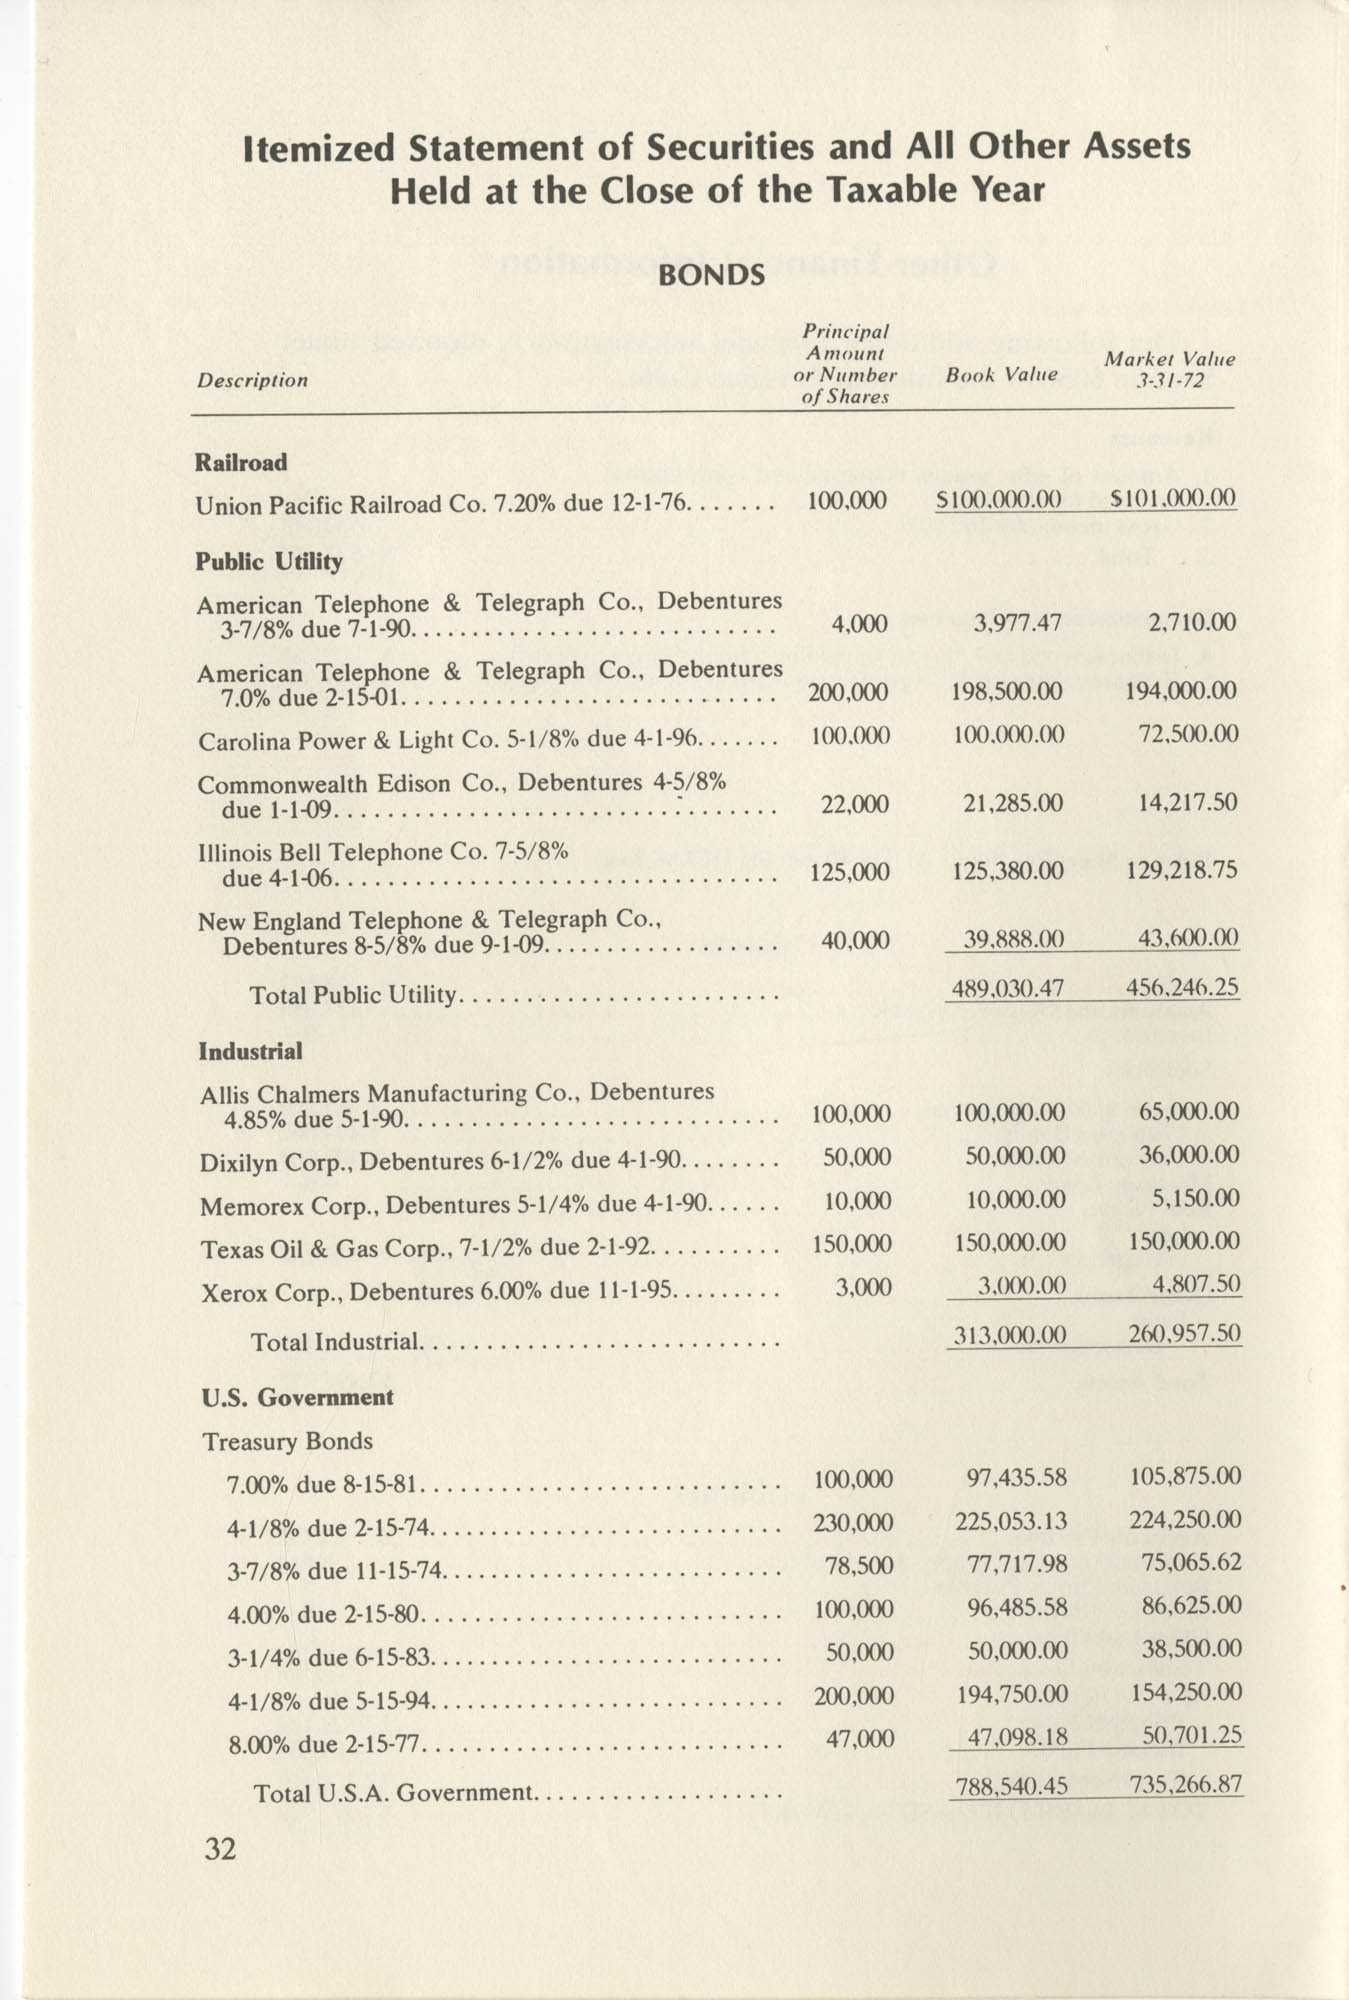 Southern Education Foundation, Annual Report 1971-1972, Page 32